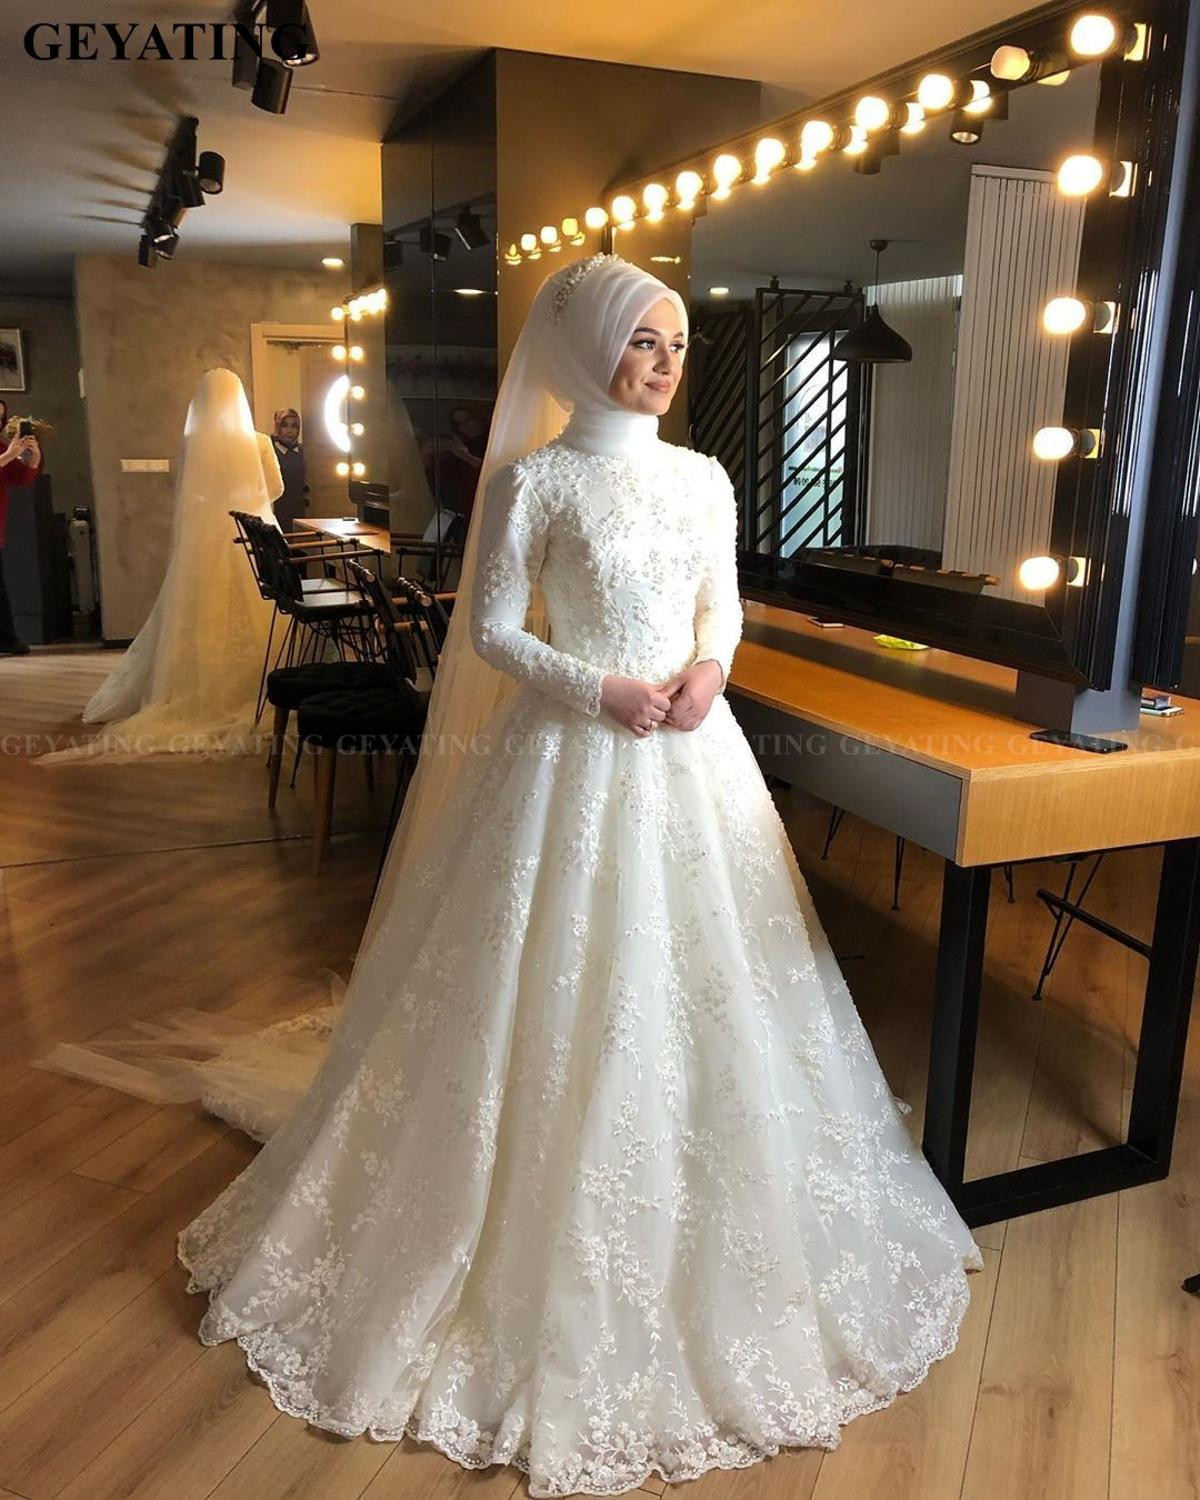 2020 Elegant Off White Islamic Muslim Wedding Dress With Hijab Long Sleeves High Neck Pearls Lace Arabic Bridal Gowns In Dubai Wedding Dresses Aliexpress